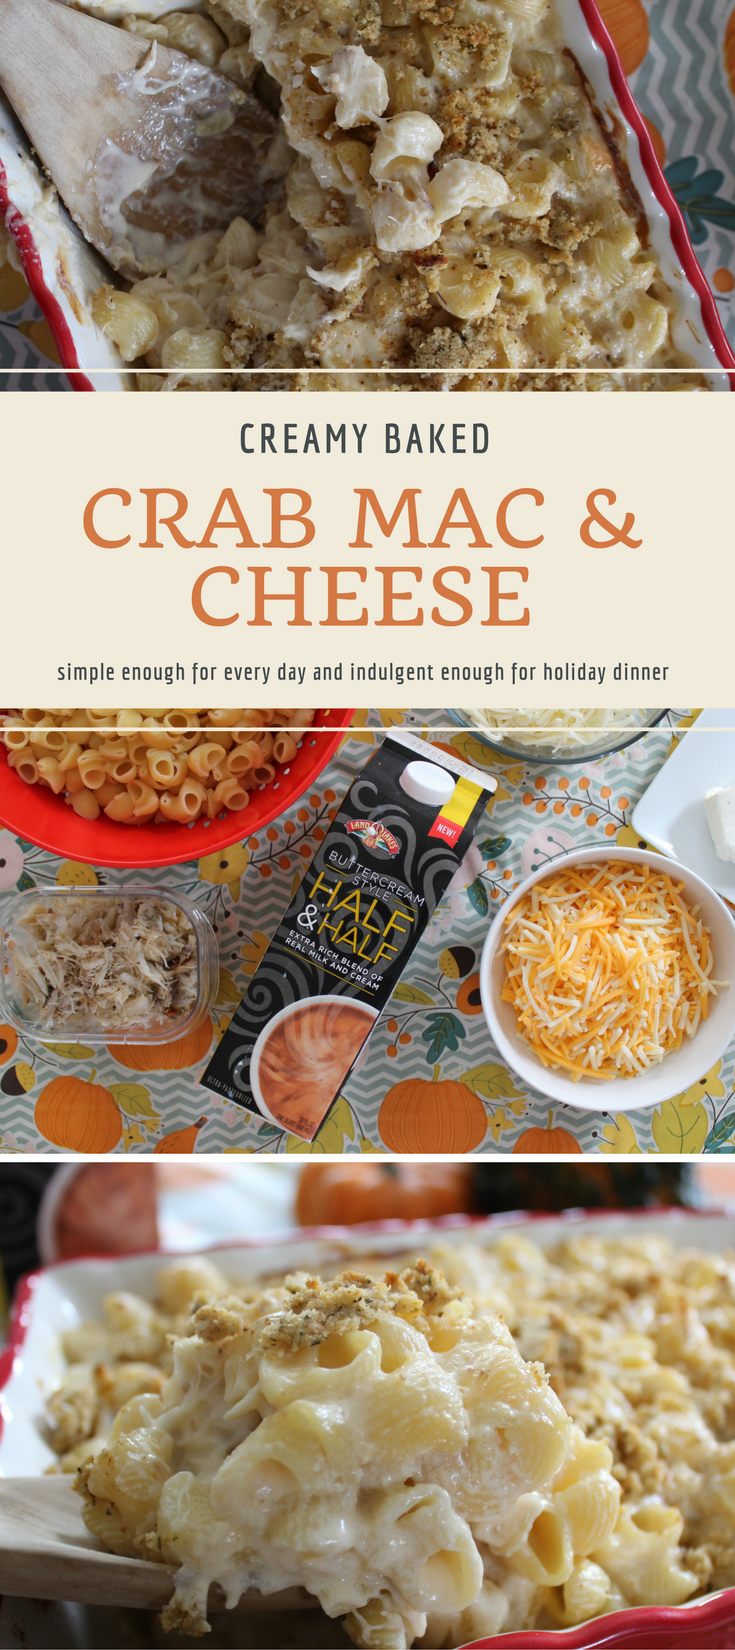 This creamy baked crab mac and cheese is simple enough for every day and indulgent enough to serve for the holidays.